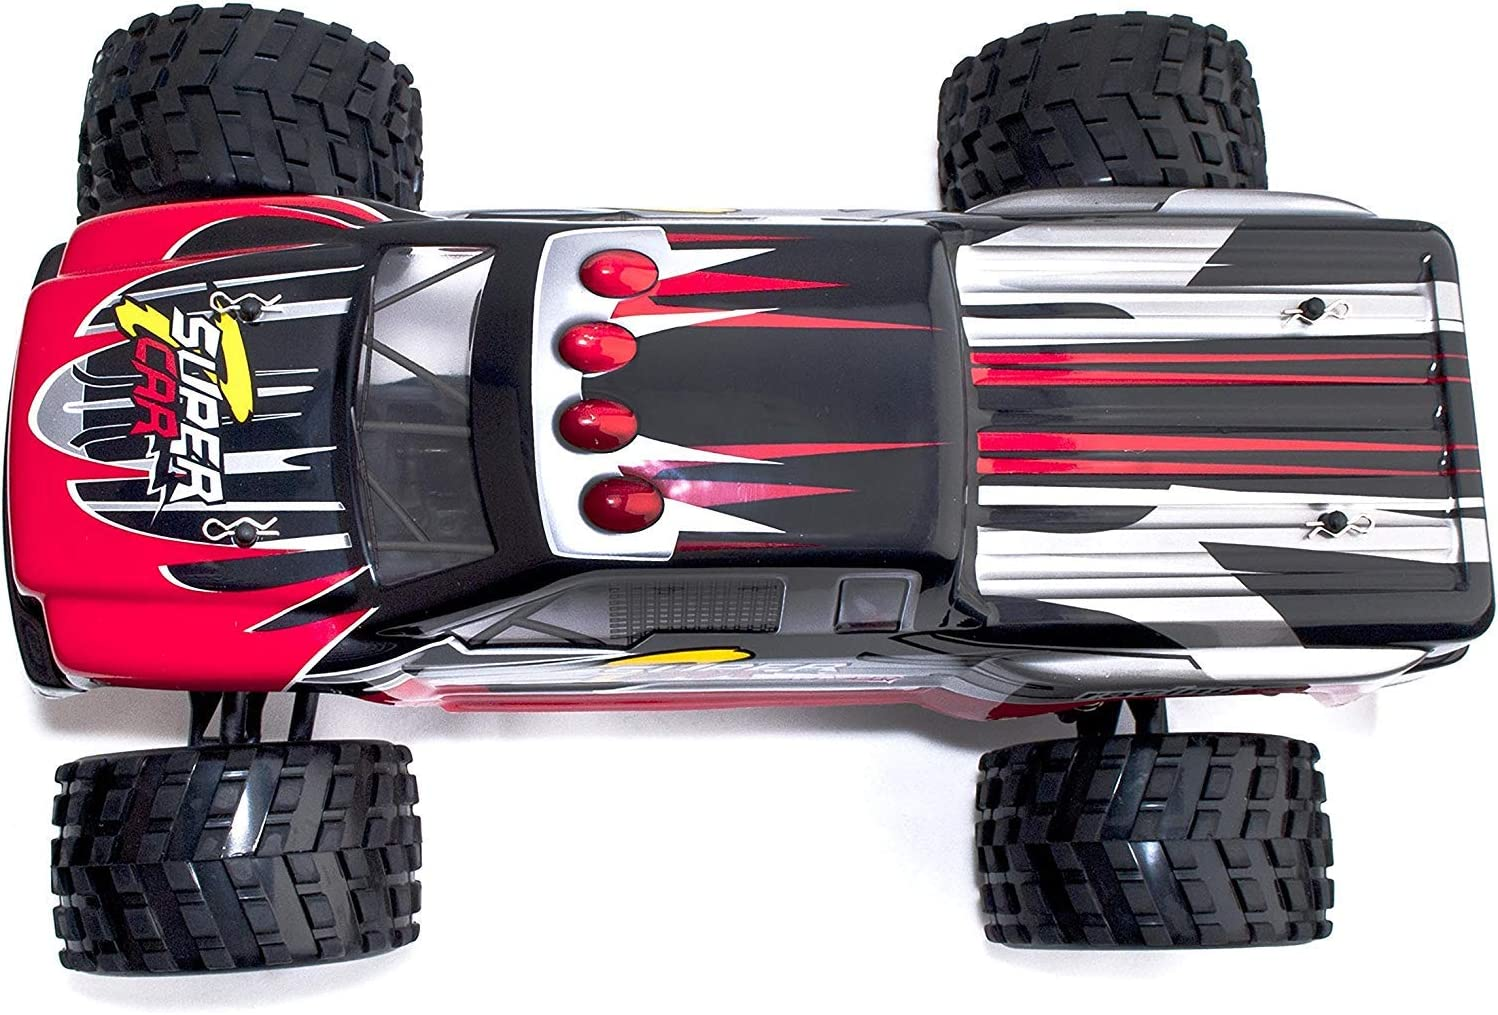 ALEKO RCC66969RED 4WD 2.4 Ghz Off Road Electric Power High Speed Monster Truck Red 1/12 Scale [並行輸入品]